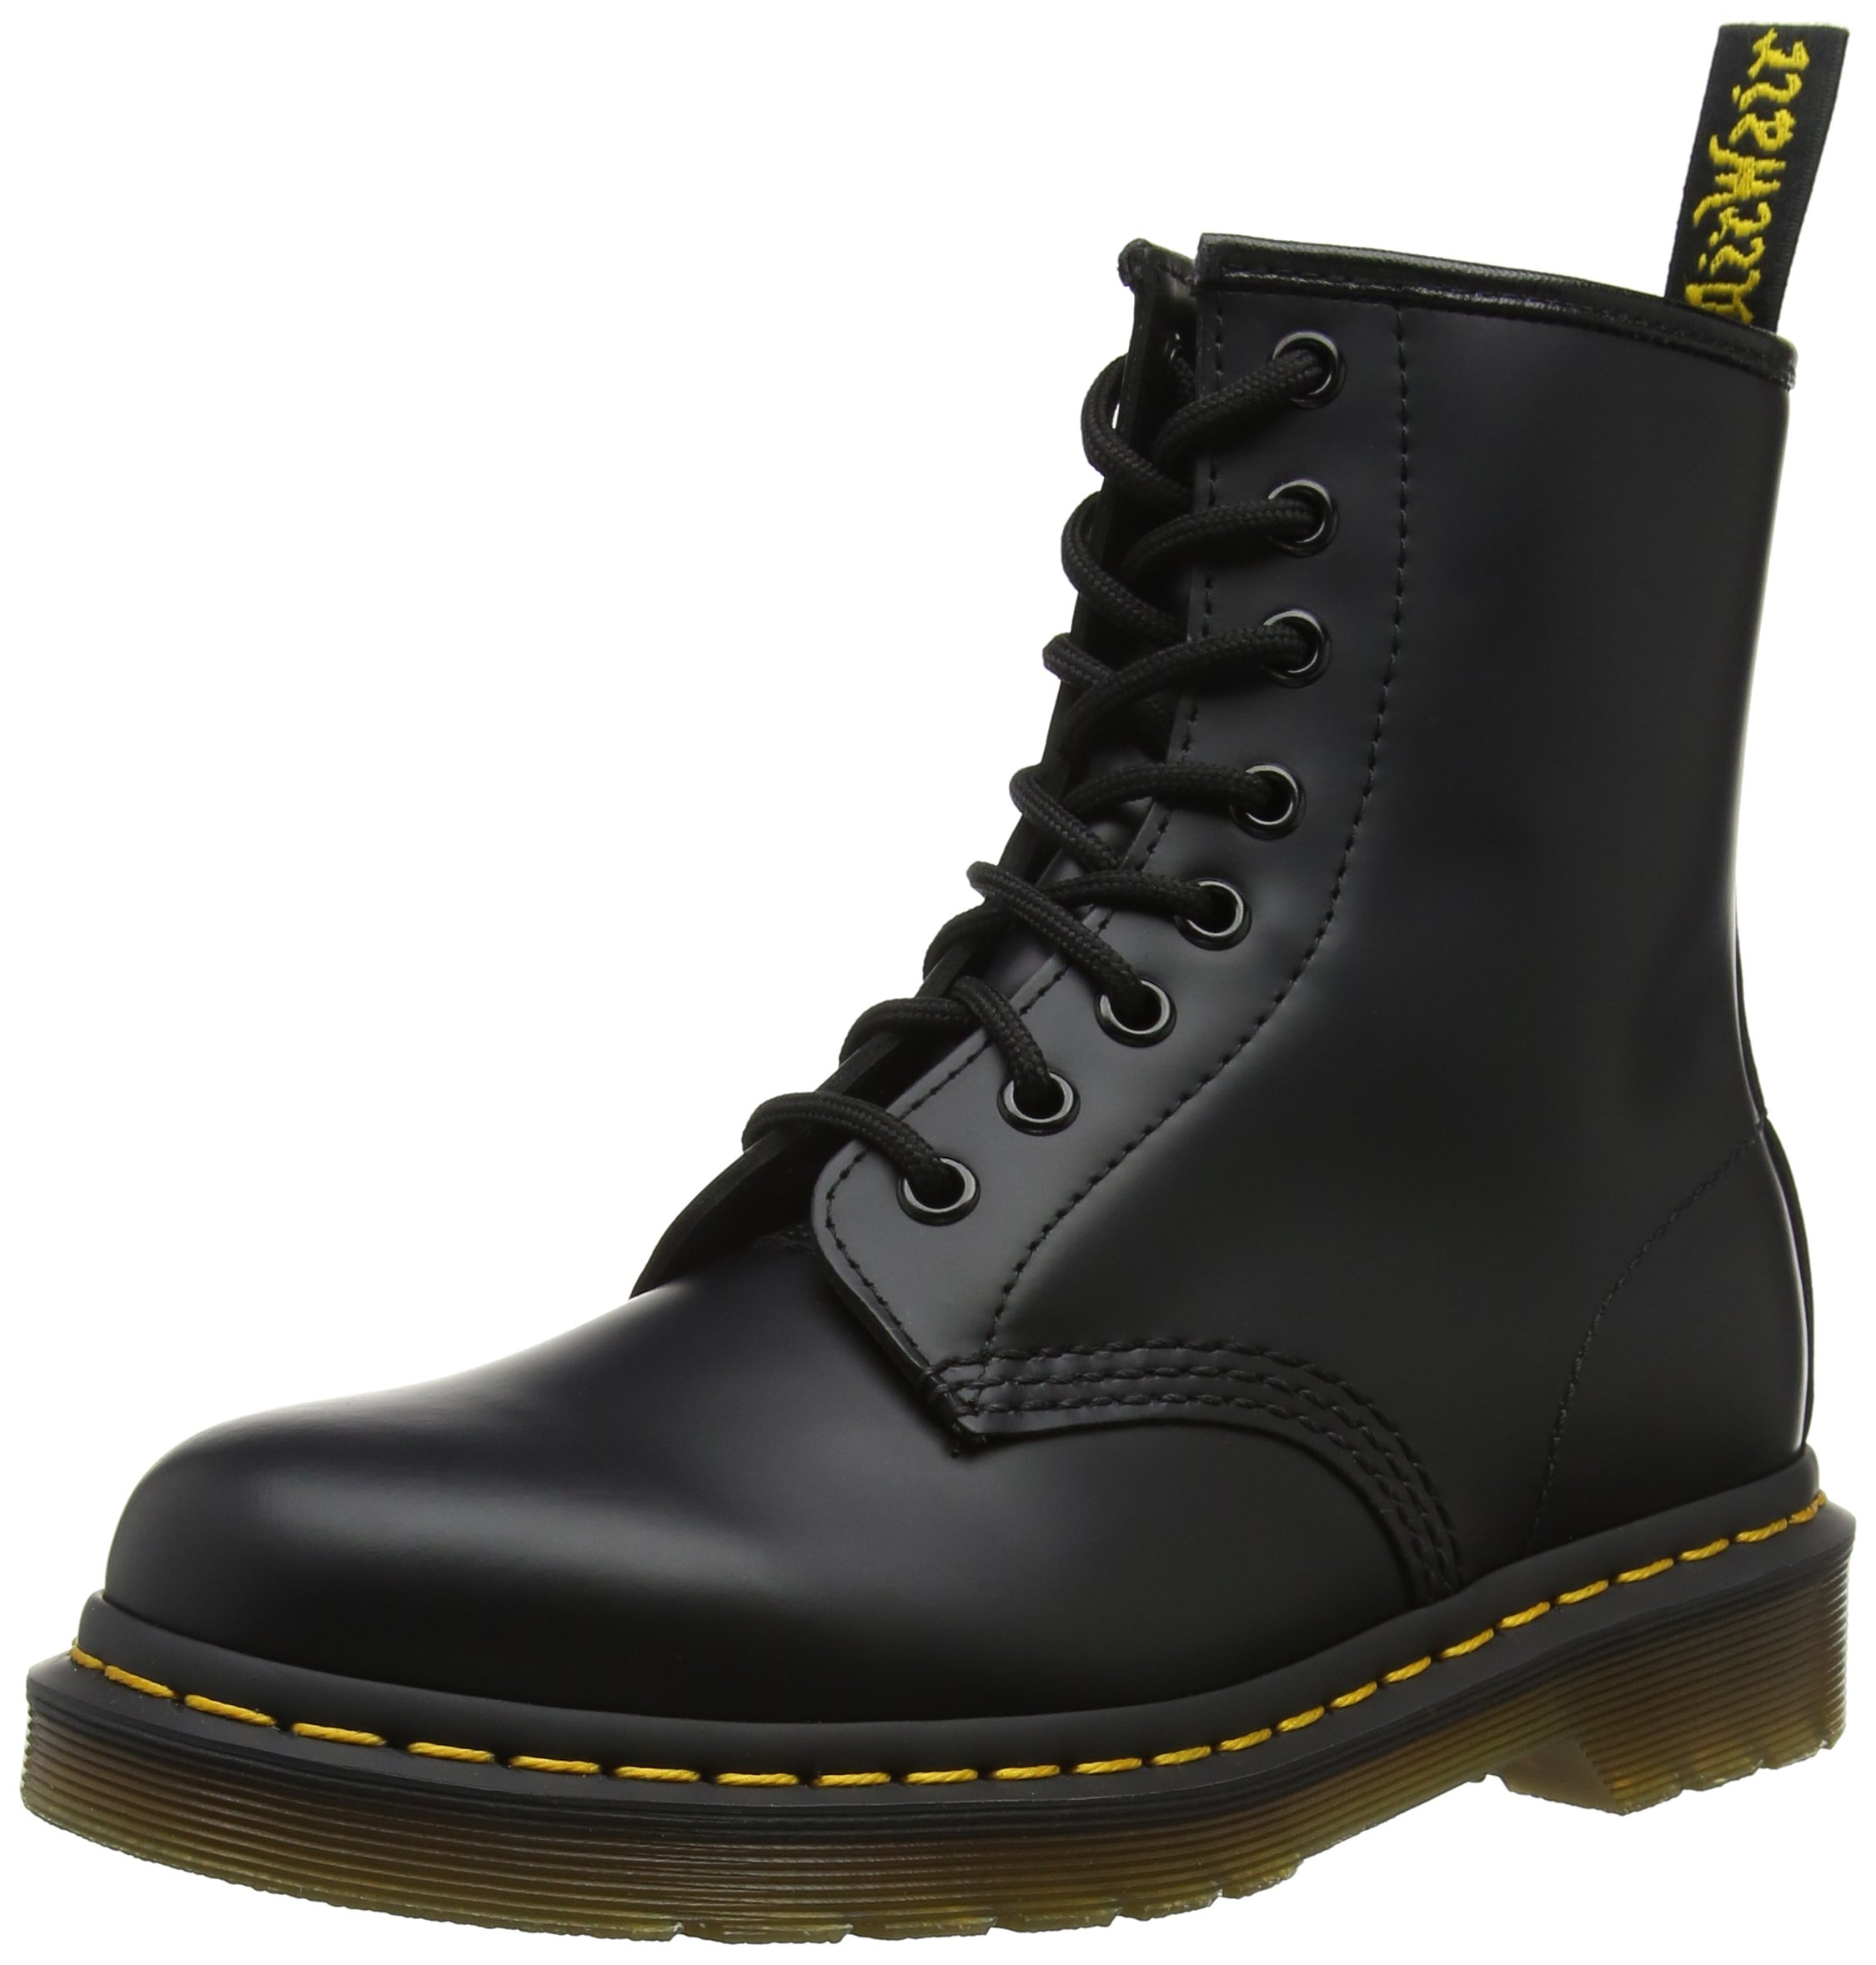 Dr. Martens 1460 Originals 8 Eye Lace Up Boot, Black Smooth Leather, 7UK/8 US Mens/9 US Womens, 41 EU by Dr. Martens